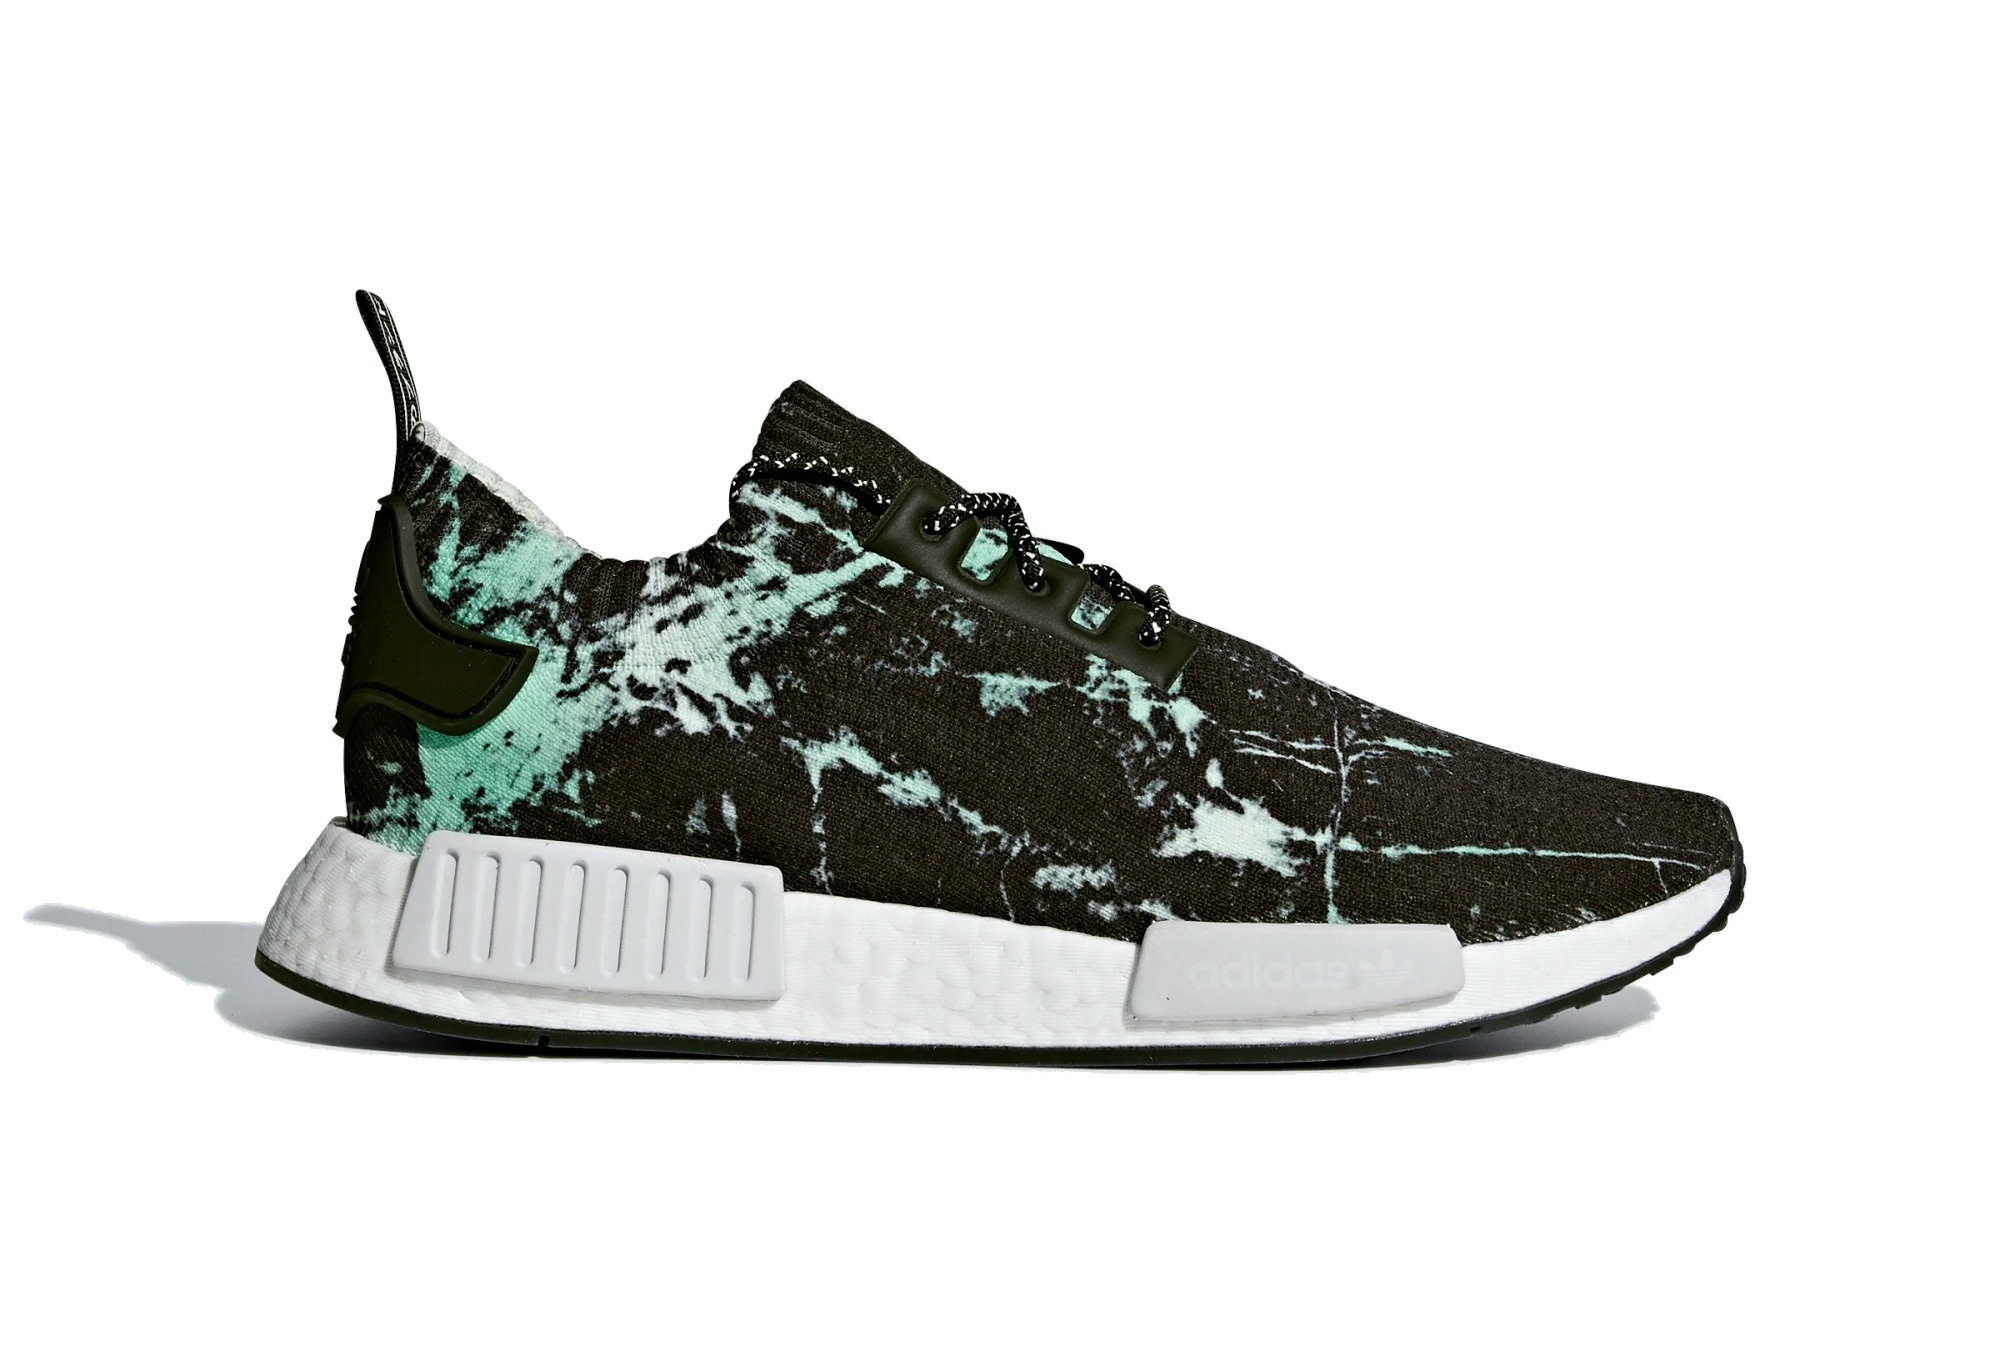 factory outlets new style attractive price adidas sneakers NMD R1 PK unisexe noir/vert taille 38 2/3 ...